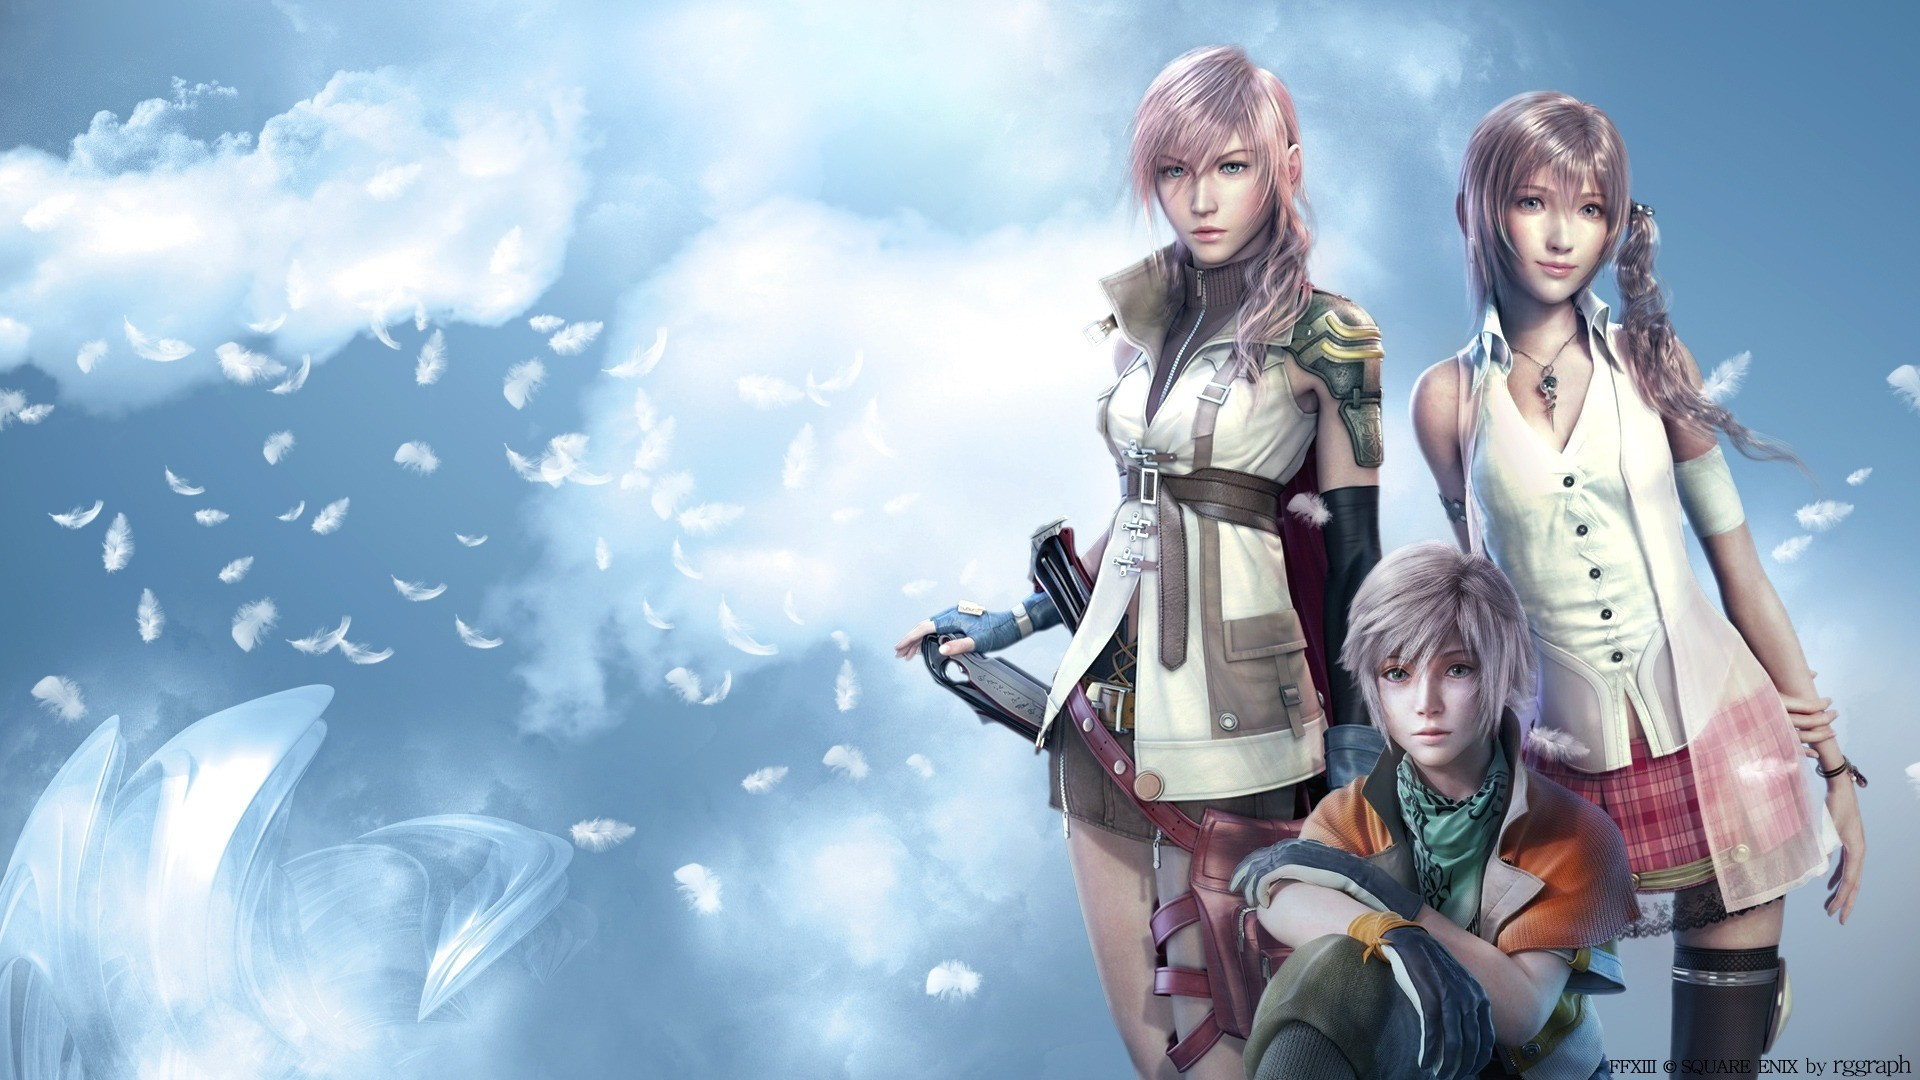 1920x1080 Final Fantasy III HD Wallpaper 21 - 1920 X 1080